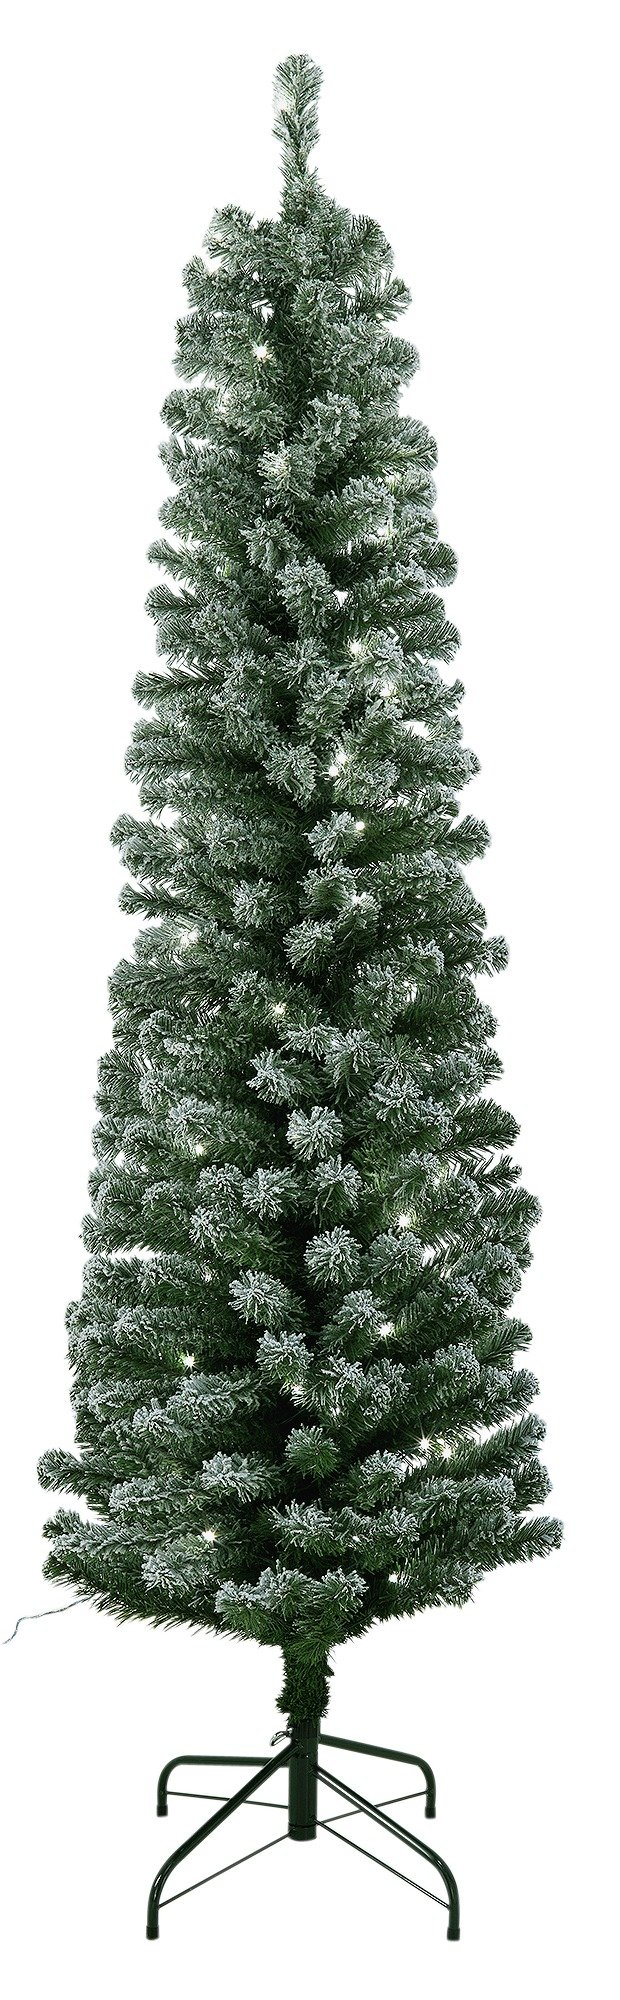 pre-lit-snow-tipped-pencil-christmas-tree-6ft